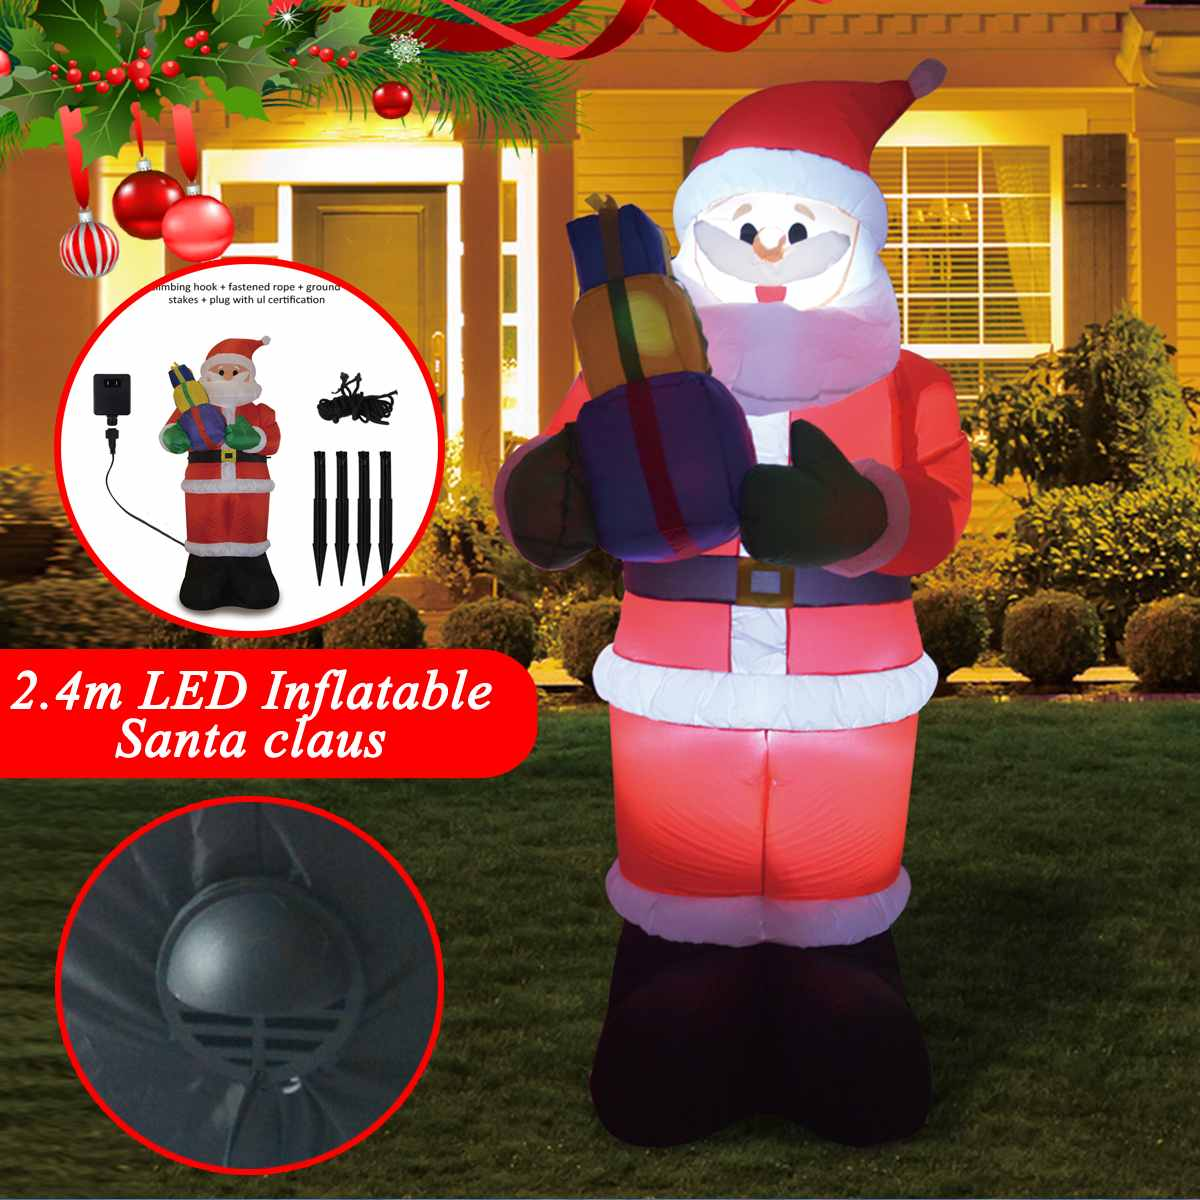 2 4m Christmas Inflatable Toys Led Inflatable Santa Claus